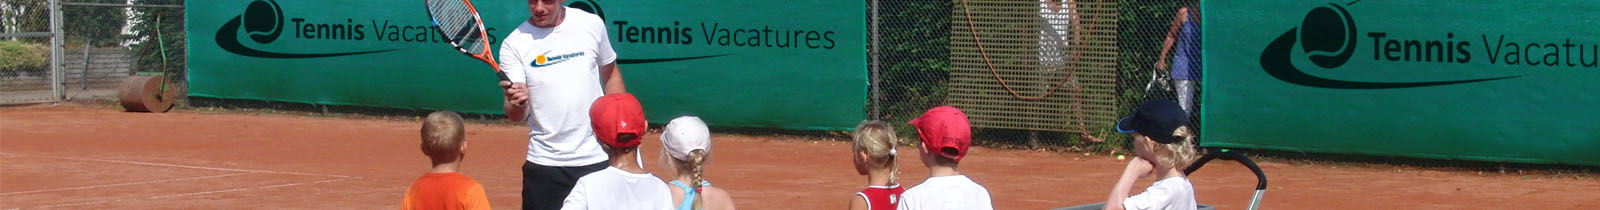 Tennis Vacatures Trainer Club Tennis